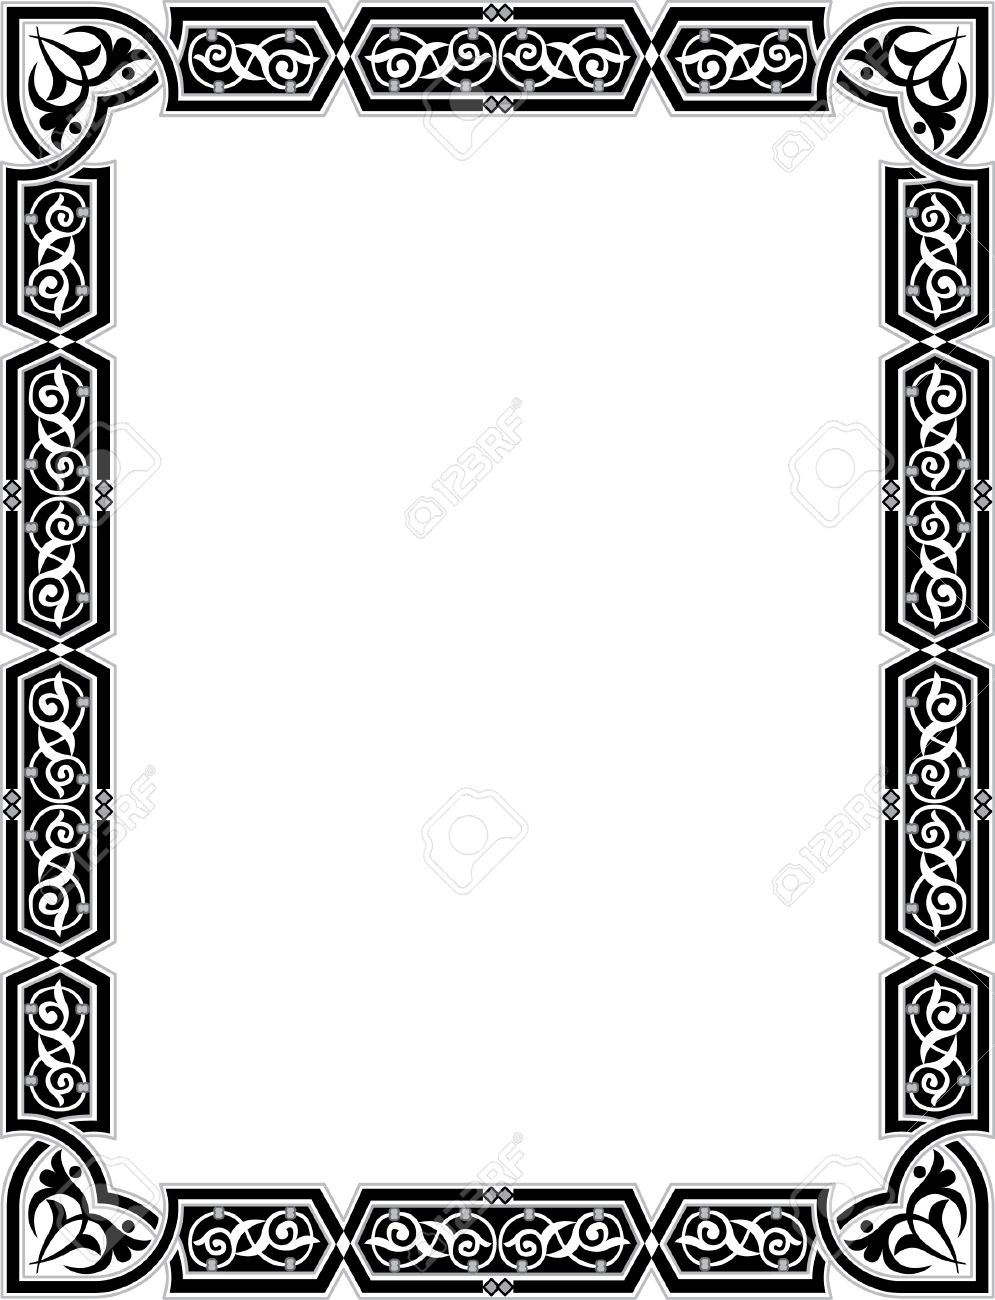 Islamic style border frame with elegant vector lines royalty free islamic style border frame with elegant vector lines stock vector 23185792 altavistaventures Images